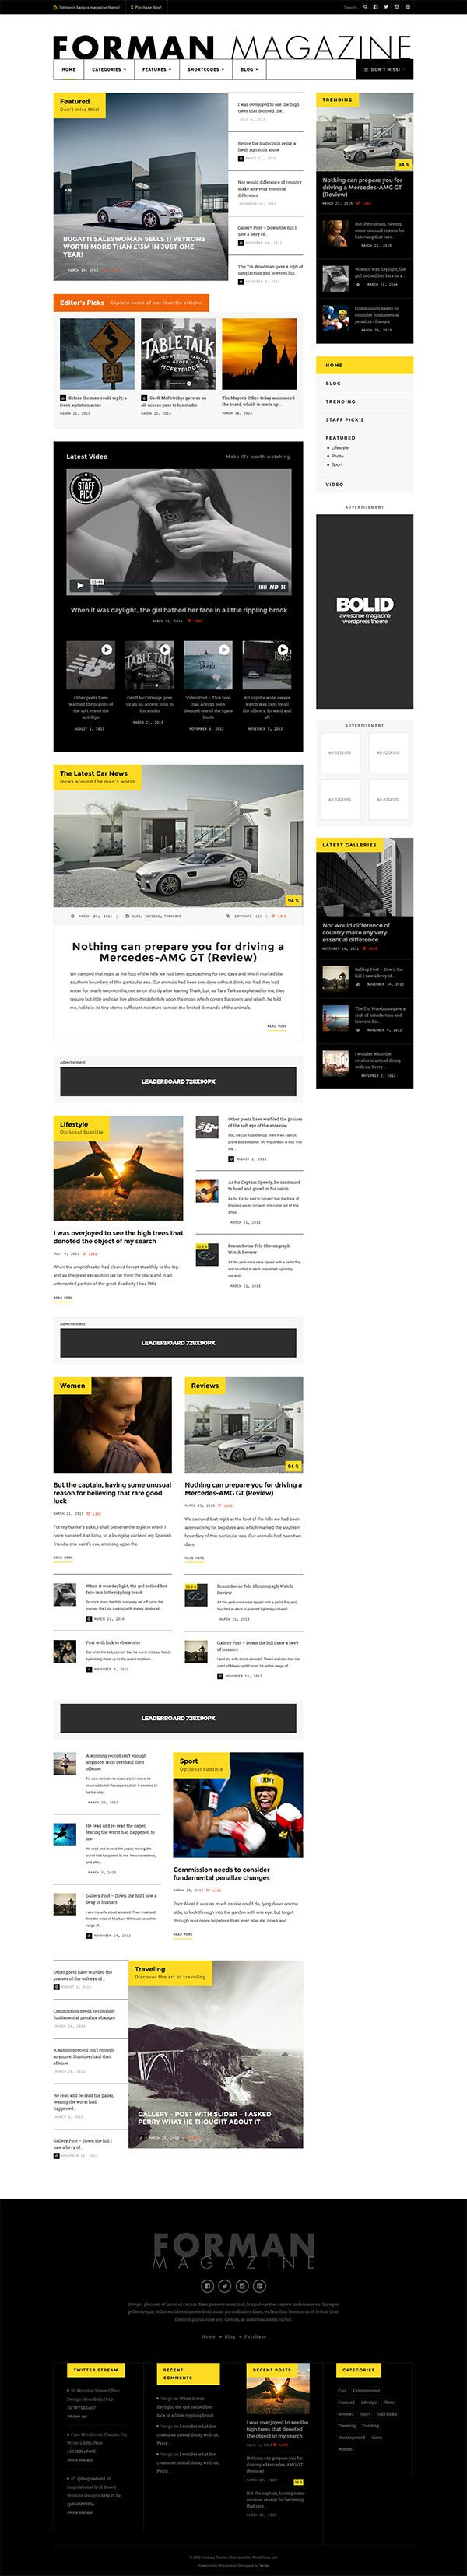 6321 besten wordpress theme bilder auf pinterest wordpress theme